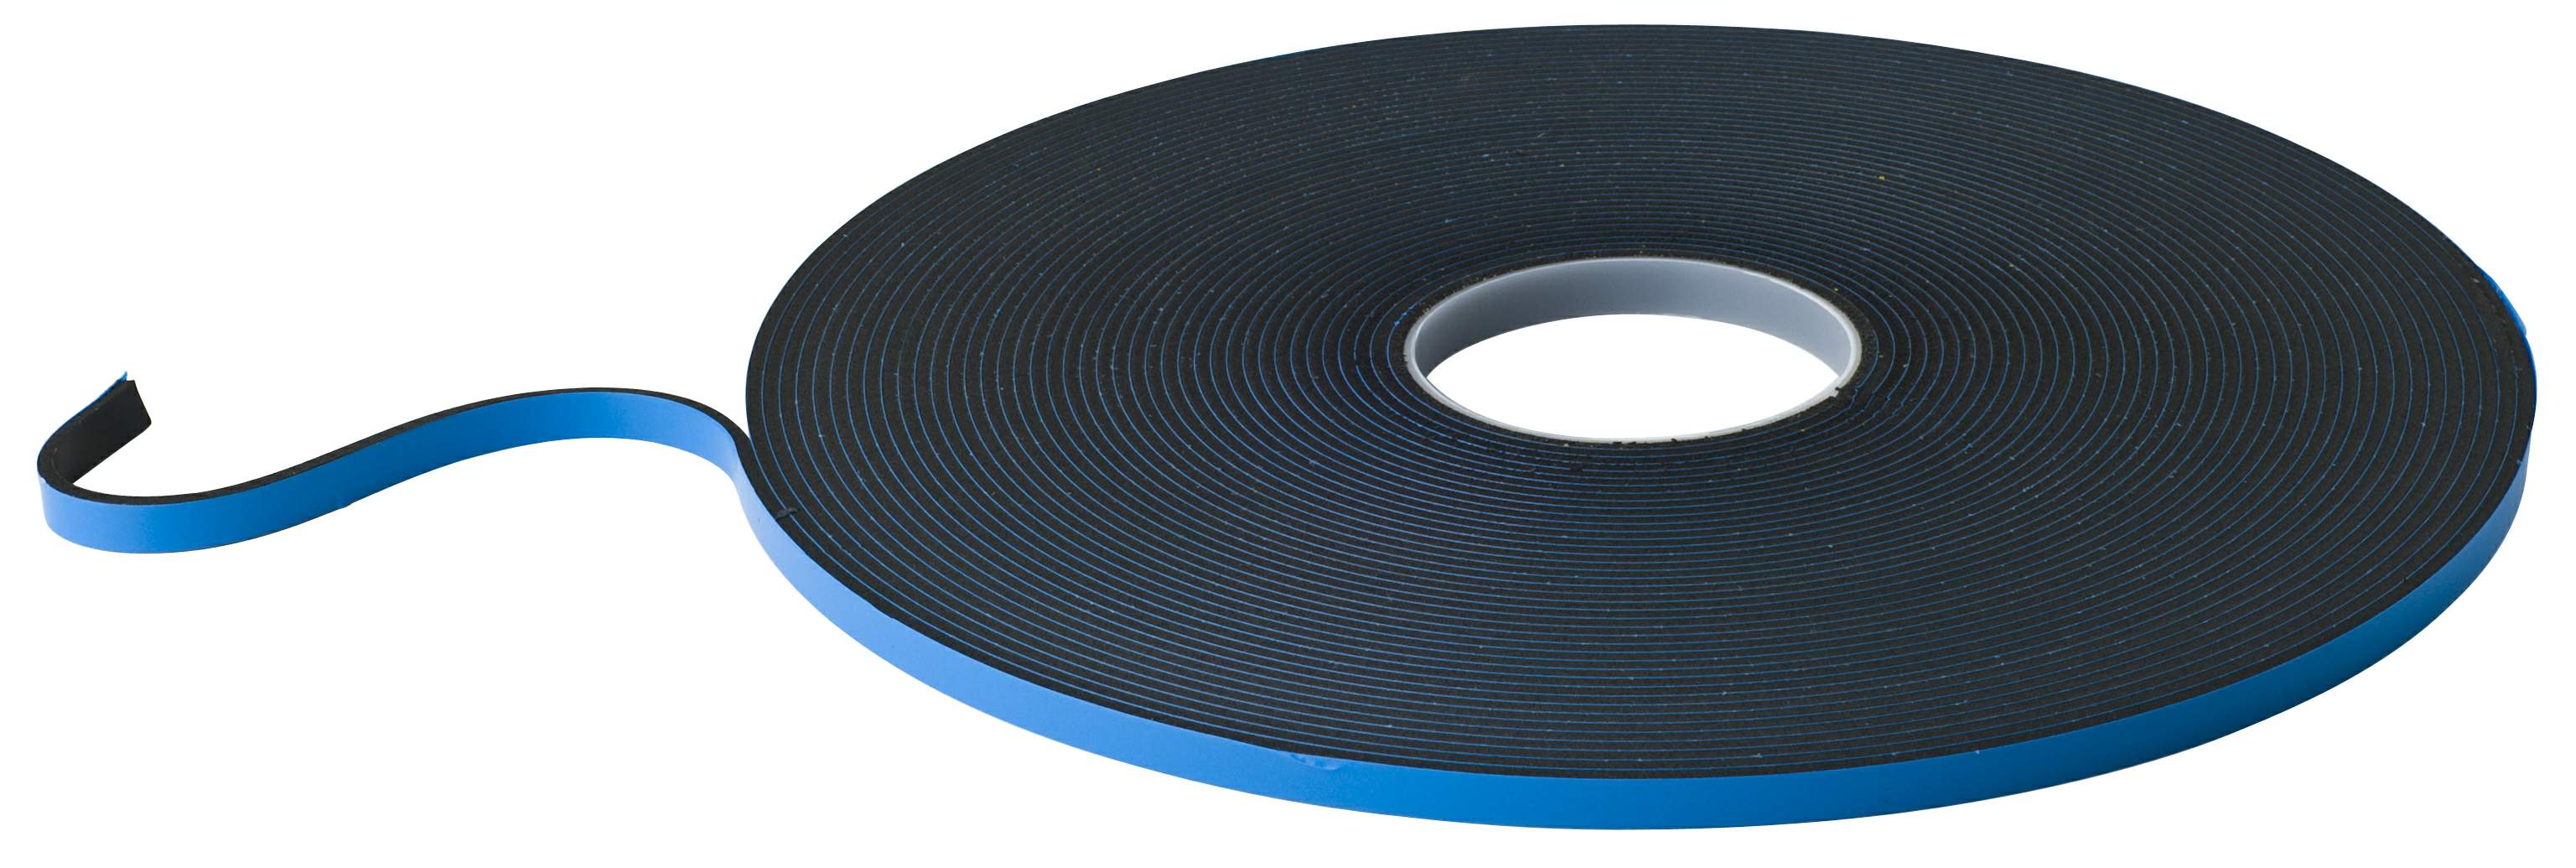 Thumbnail - FOAM TAPE S/S STRUCTURAL 4.8mm X 9mm X 15.2M